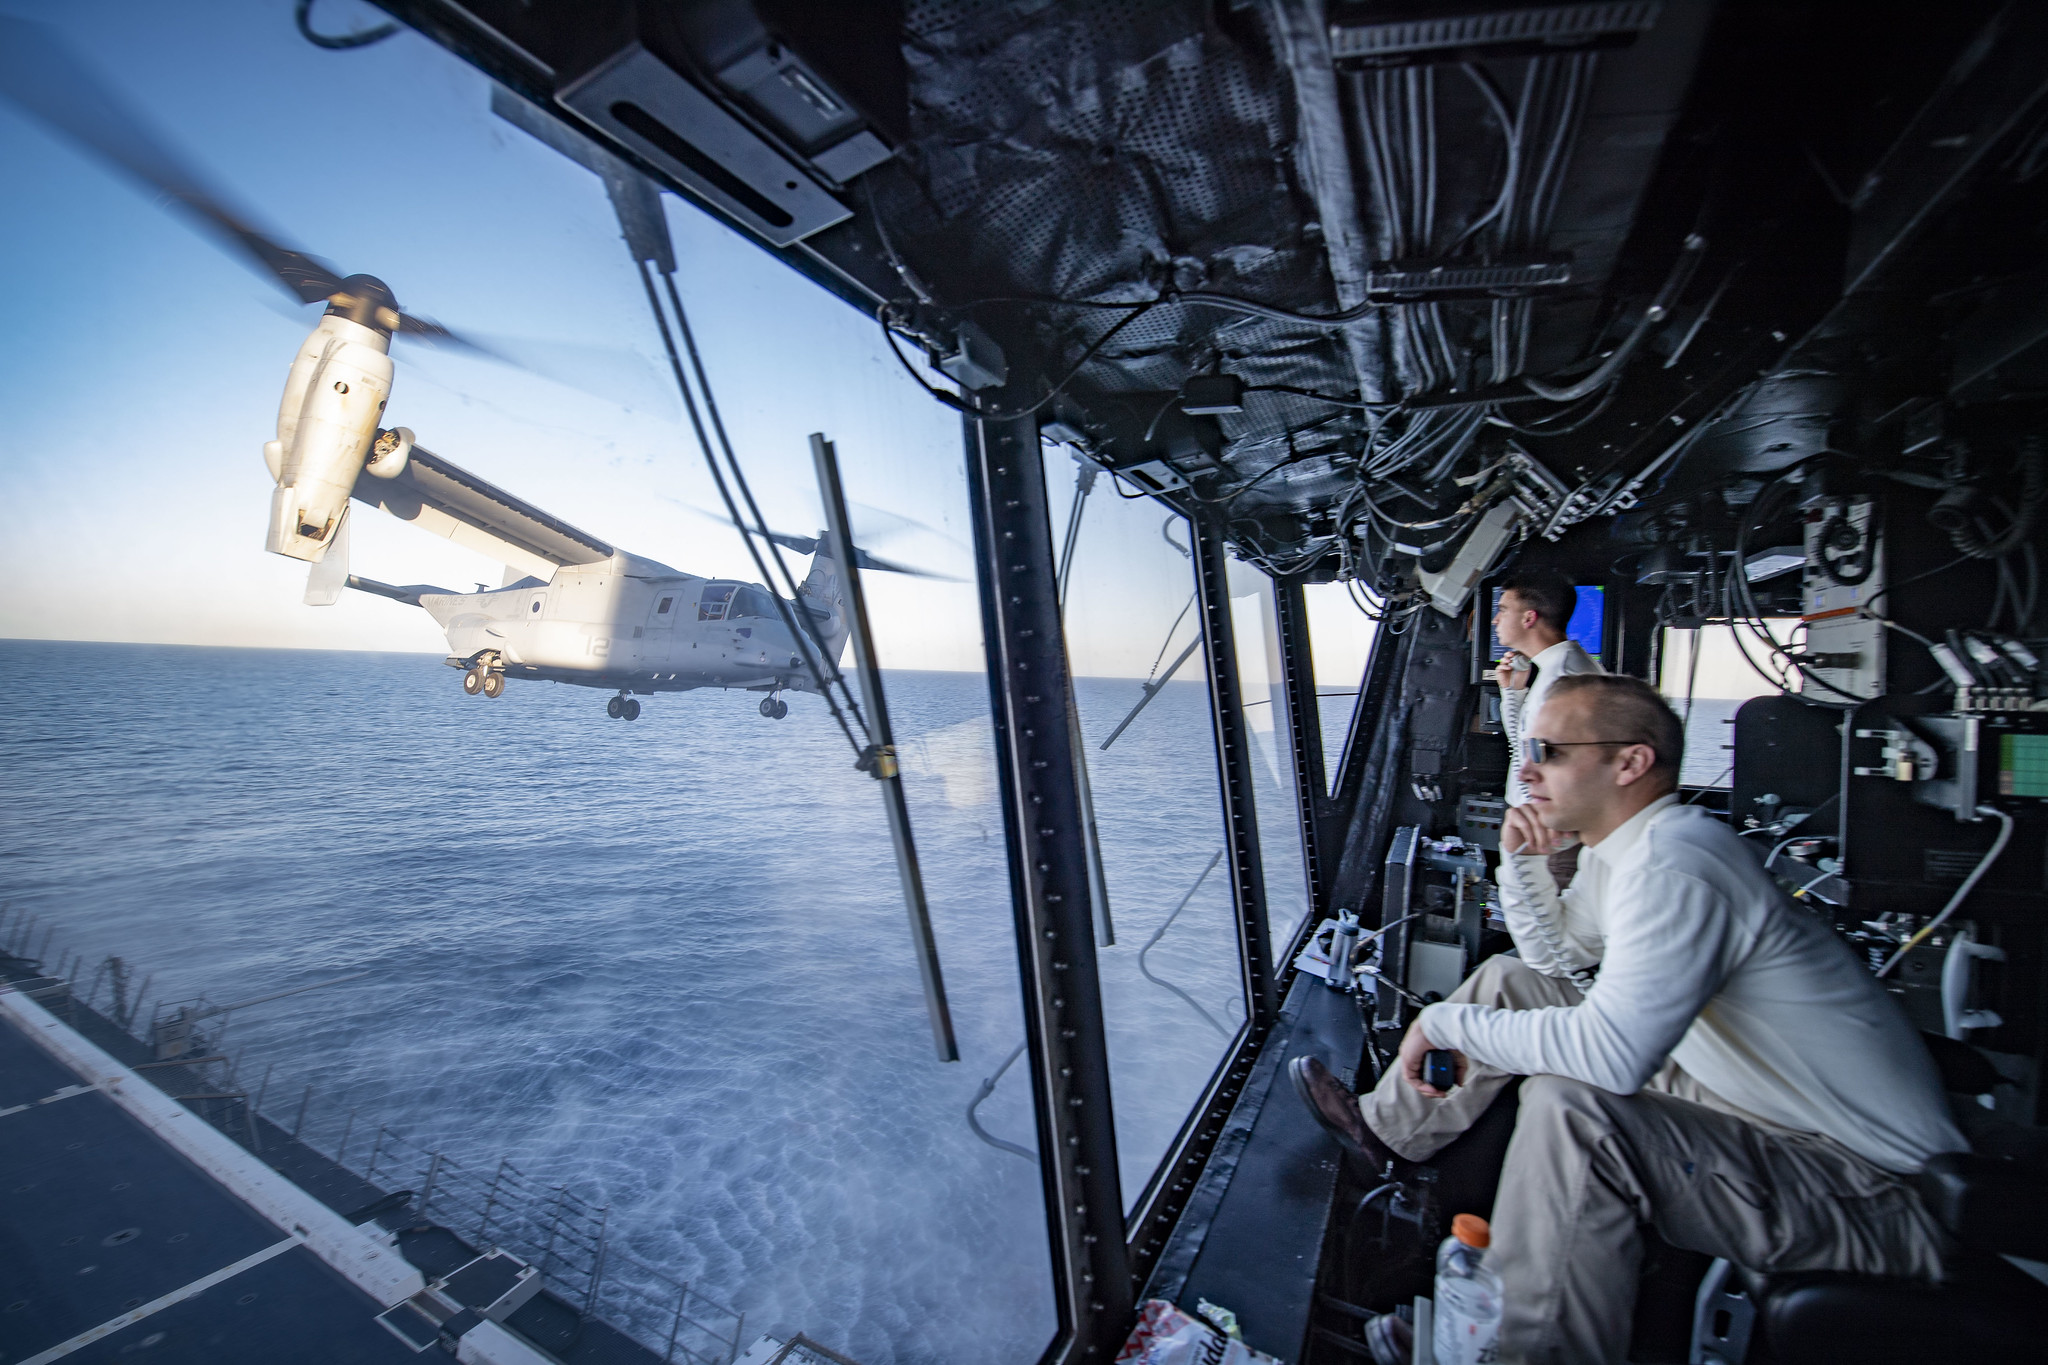 Lt. Cmdr. Brooks Rogers, the air boss aboard the amphibious transport dock ship USS Portland (LPD 27), watches flight operations Feb. 11, 2020, as an MV-22B Osprey takes off from Portland's flight deck to simulate an air assault on Camp Pendleton, Calif., during Exercise Iron Fist 2020. (Mass Communication Specialist 2nd Class Jessica Paulauskas/Navy)